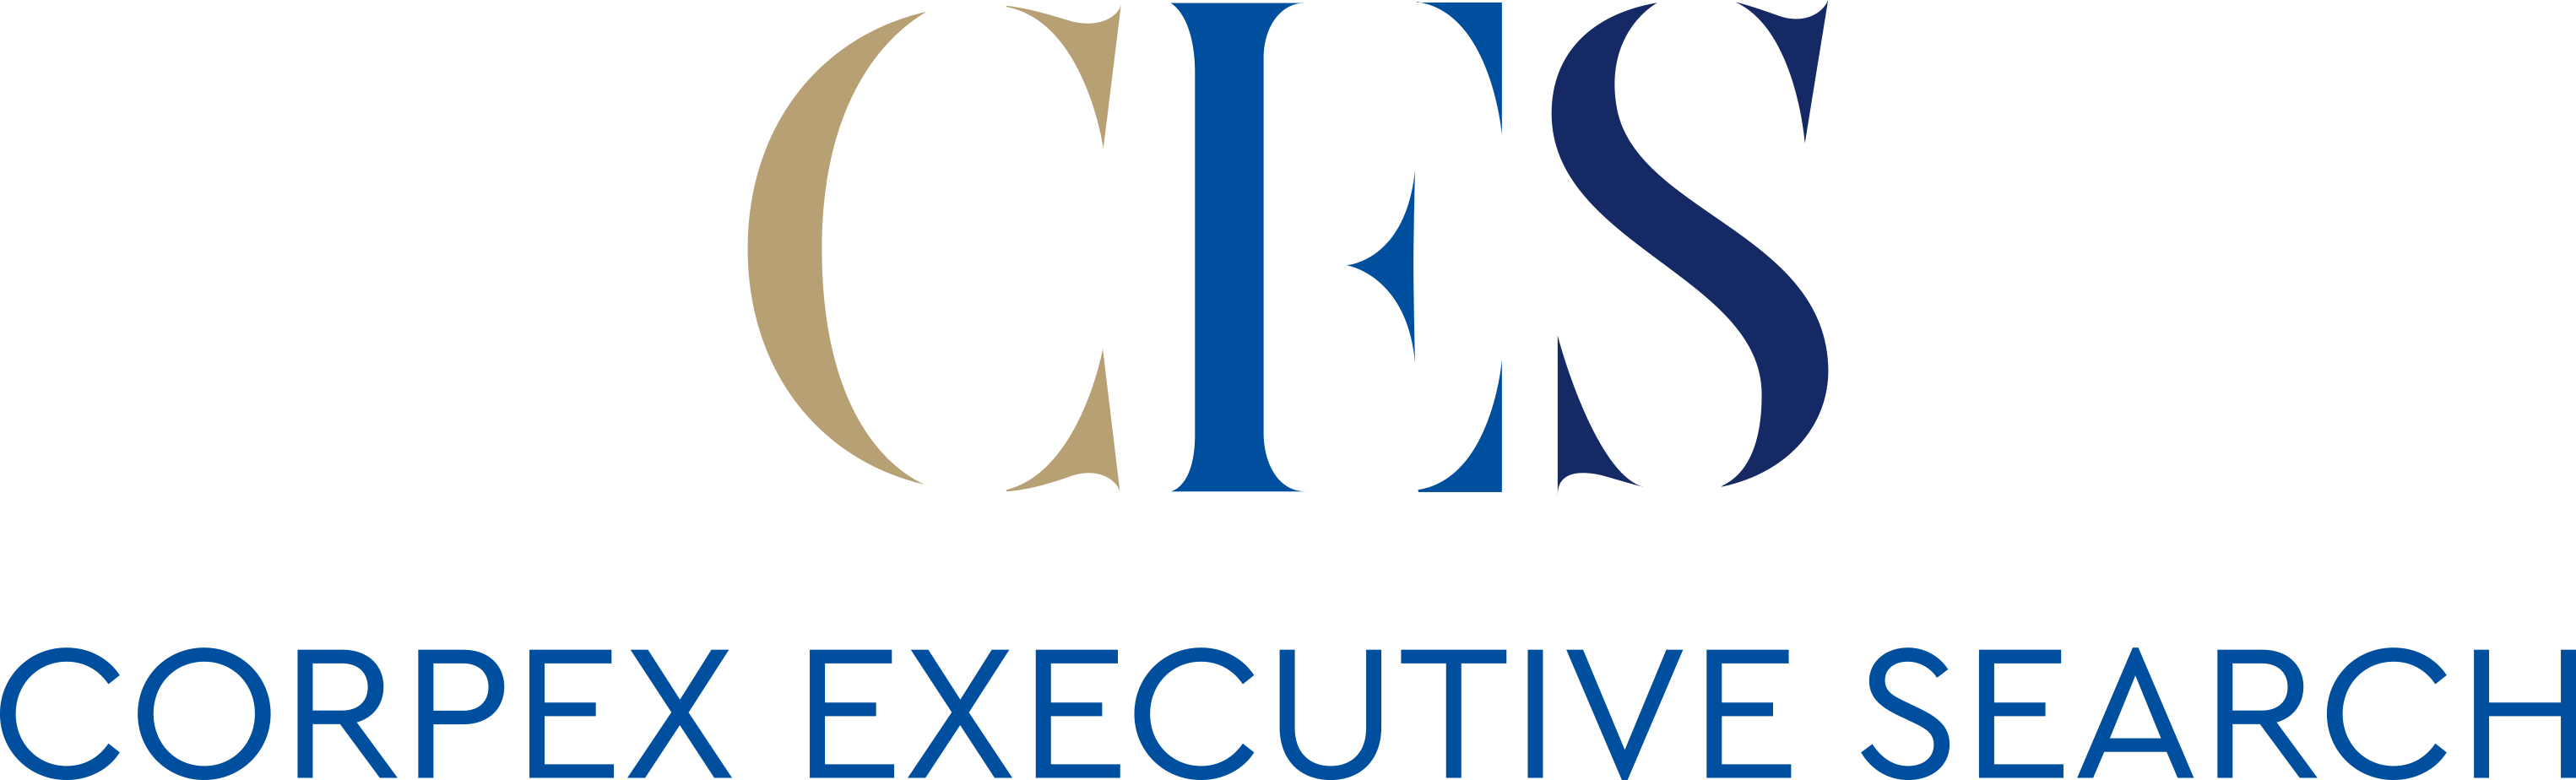 Corpex Executive Search